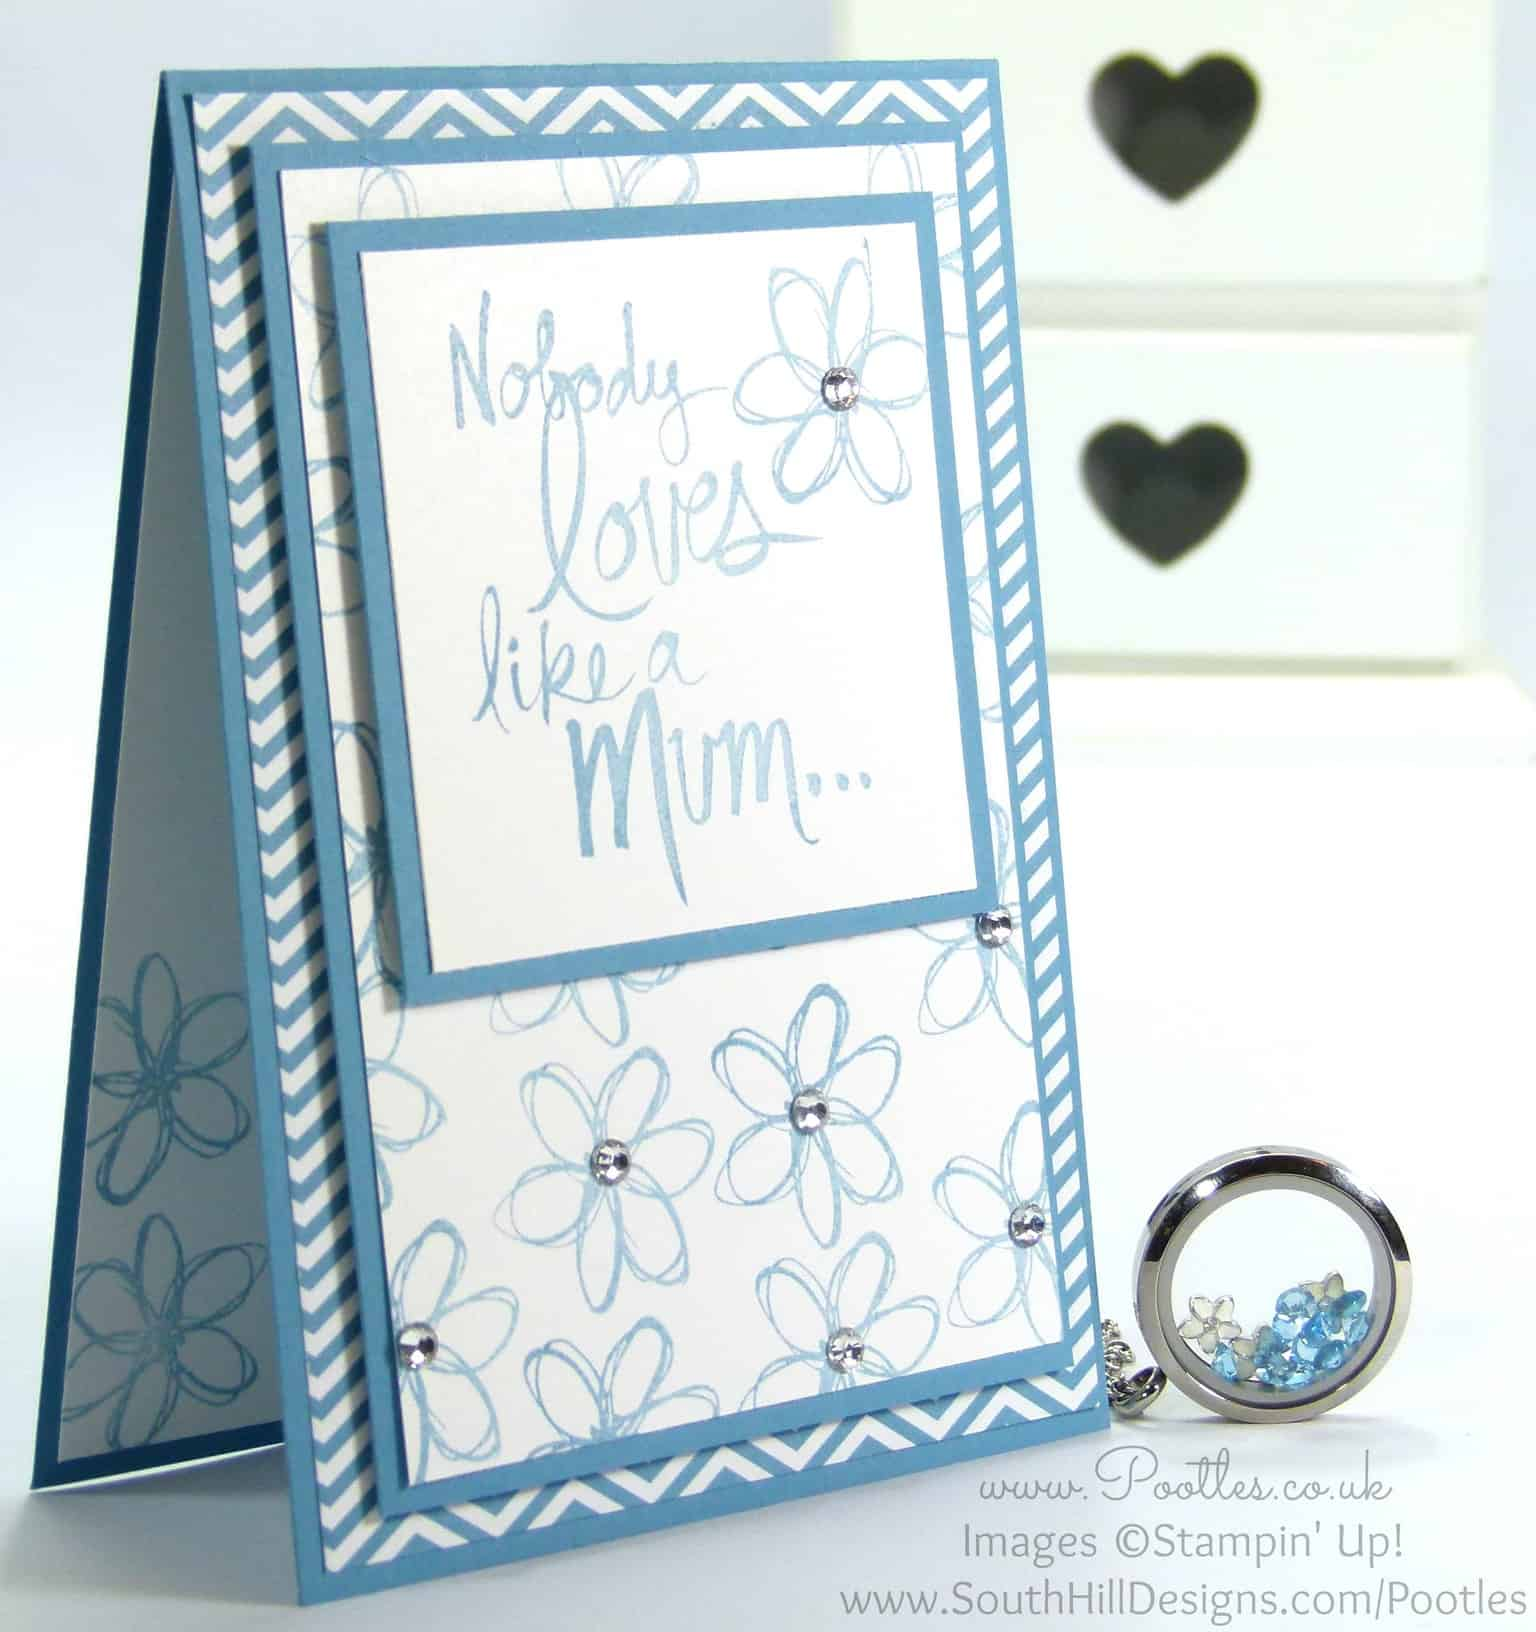 South Hill Designs & Stampin' Up! Sunday Mother's Day Card